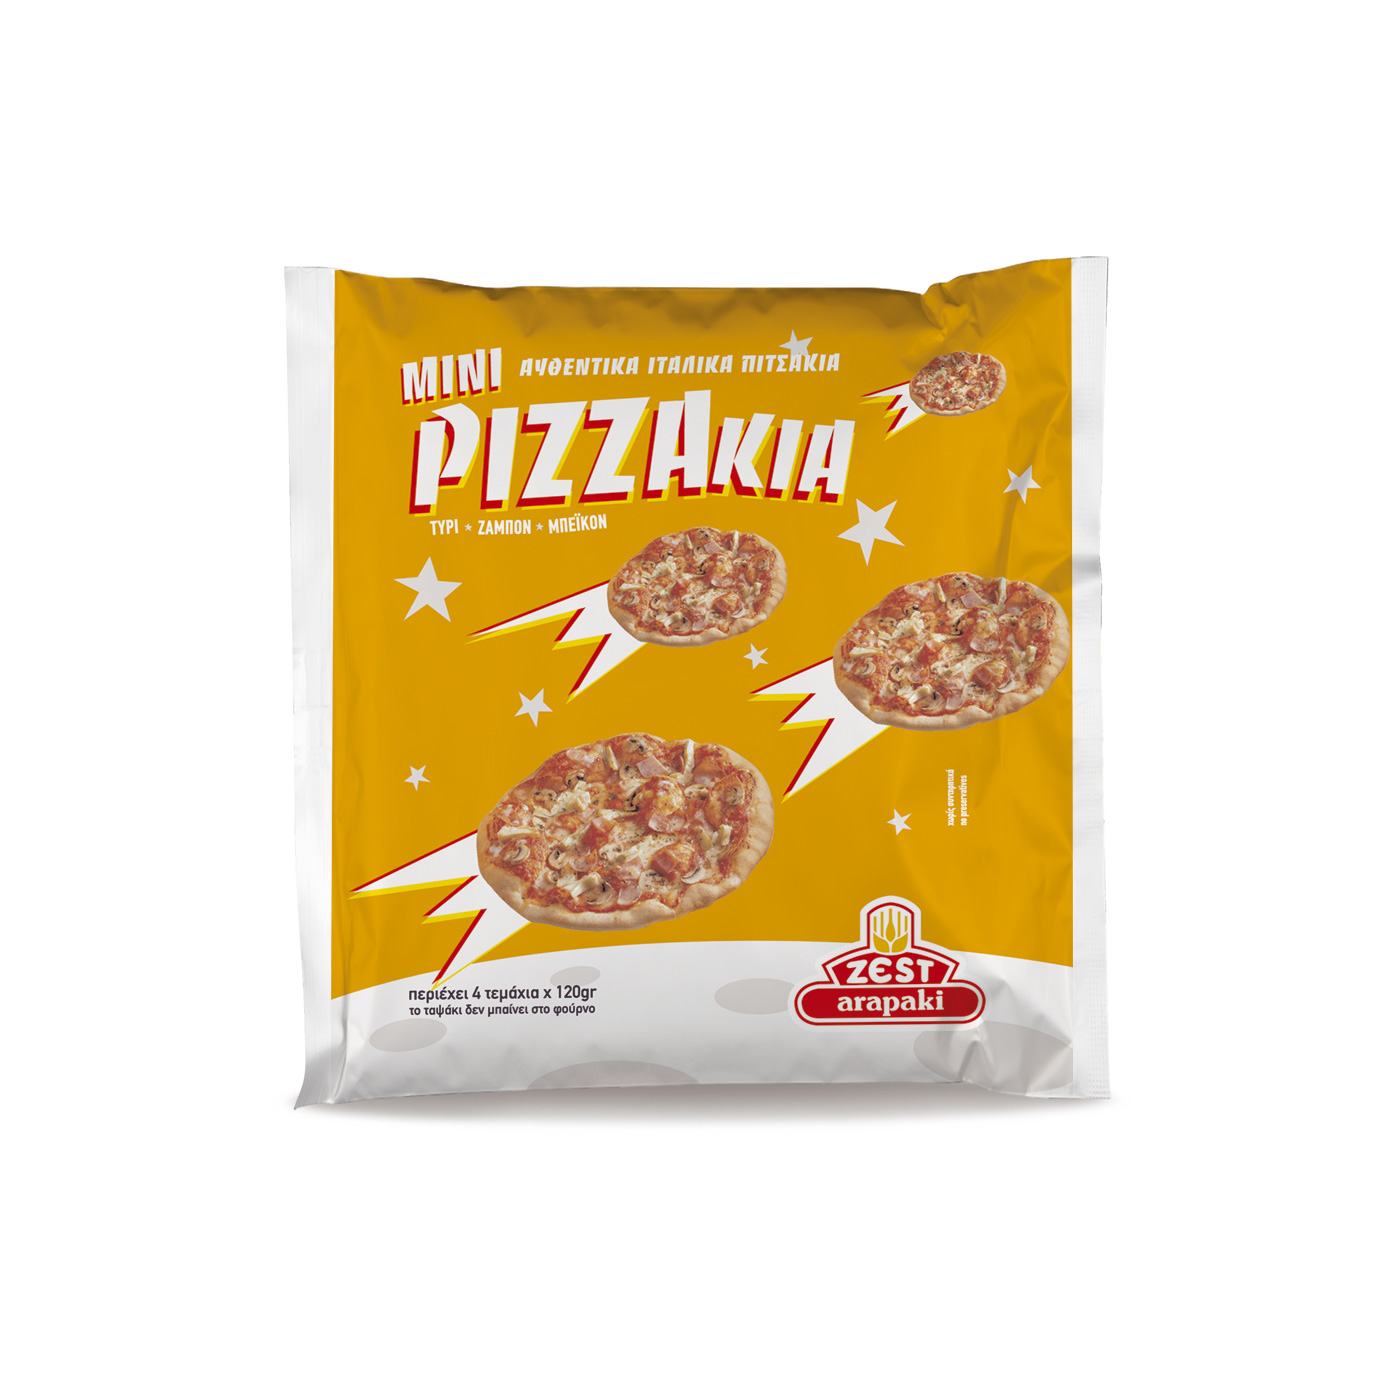 Ready made frozen pizza packaging